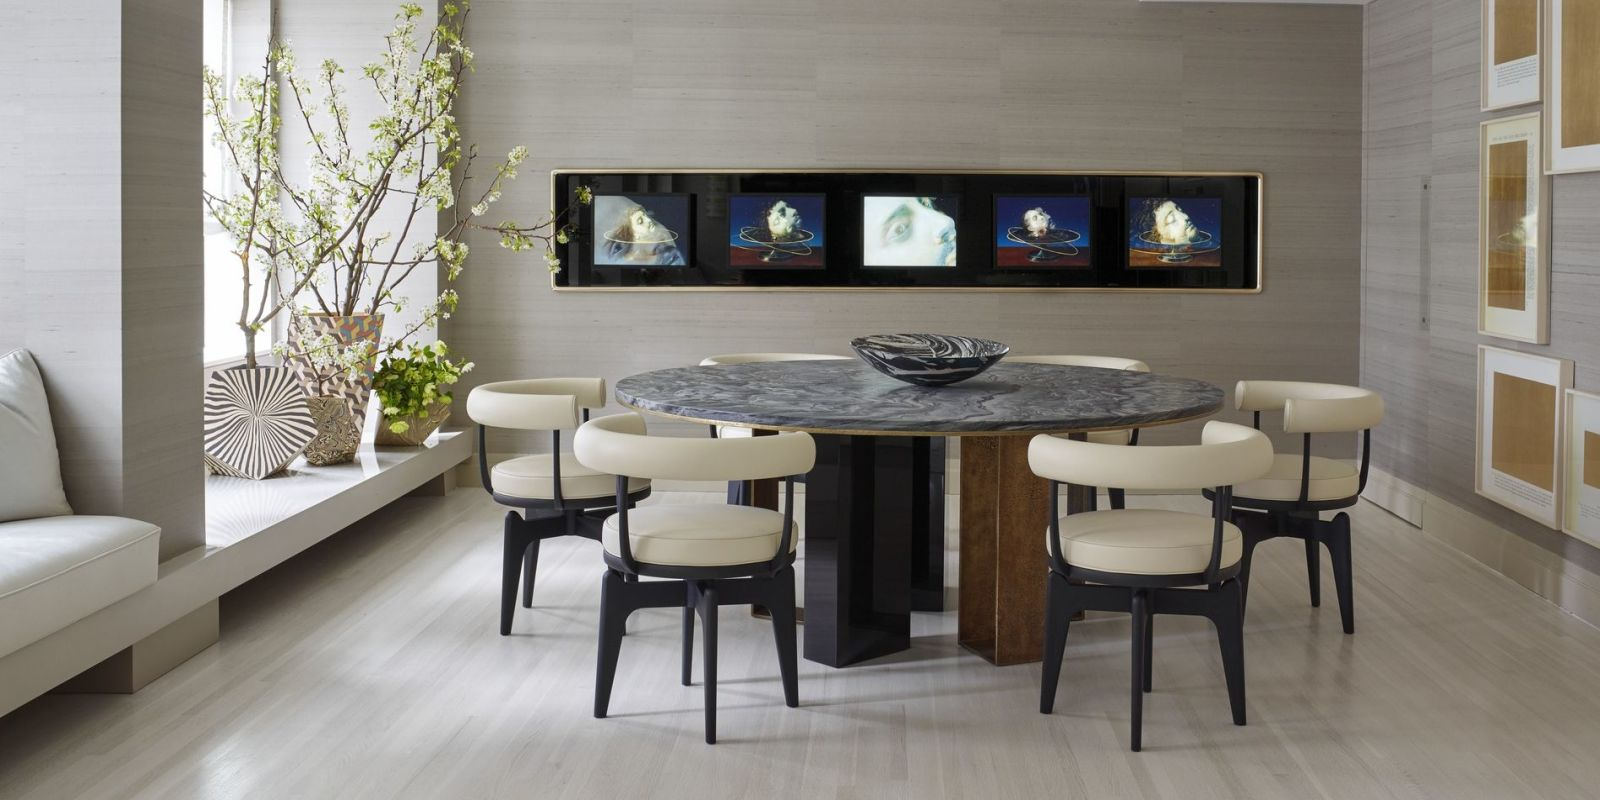 25 modern dining room decorating ideas contemporary best 25 contemporary dining rooms ideas on pinterest